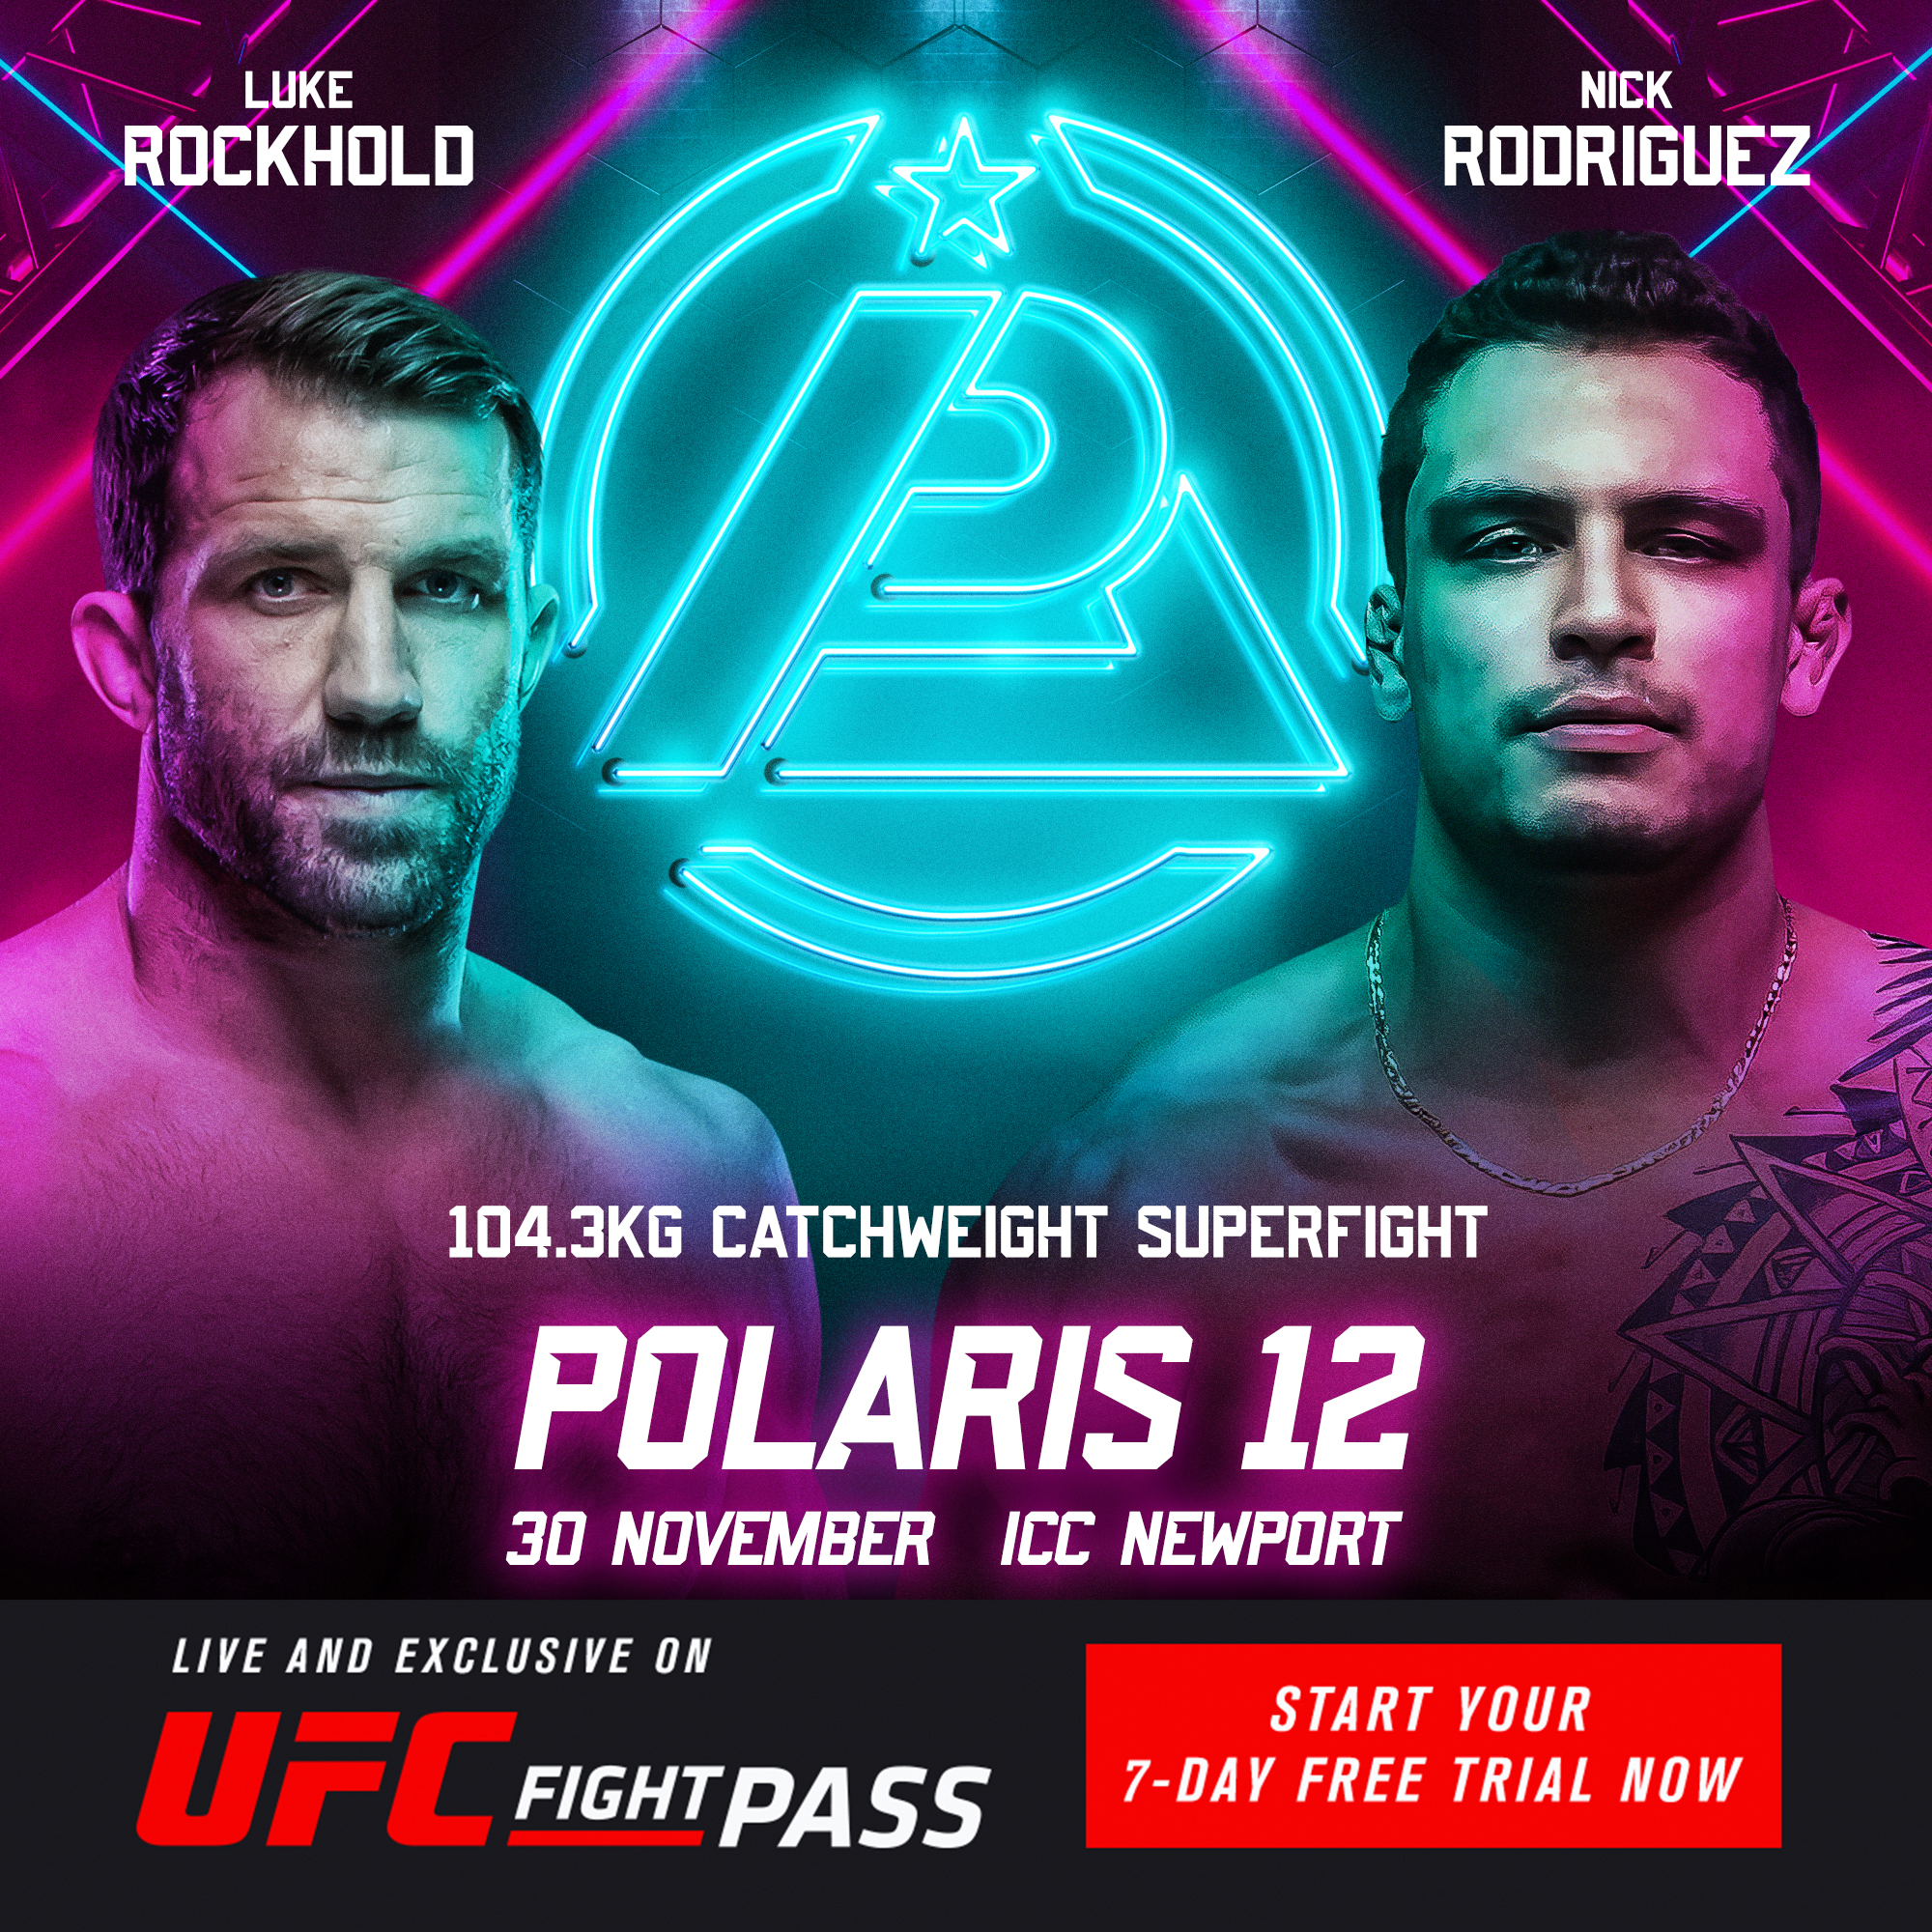 Polaris 12 – Luke Rockhold VS Nick Rodriguez